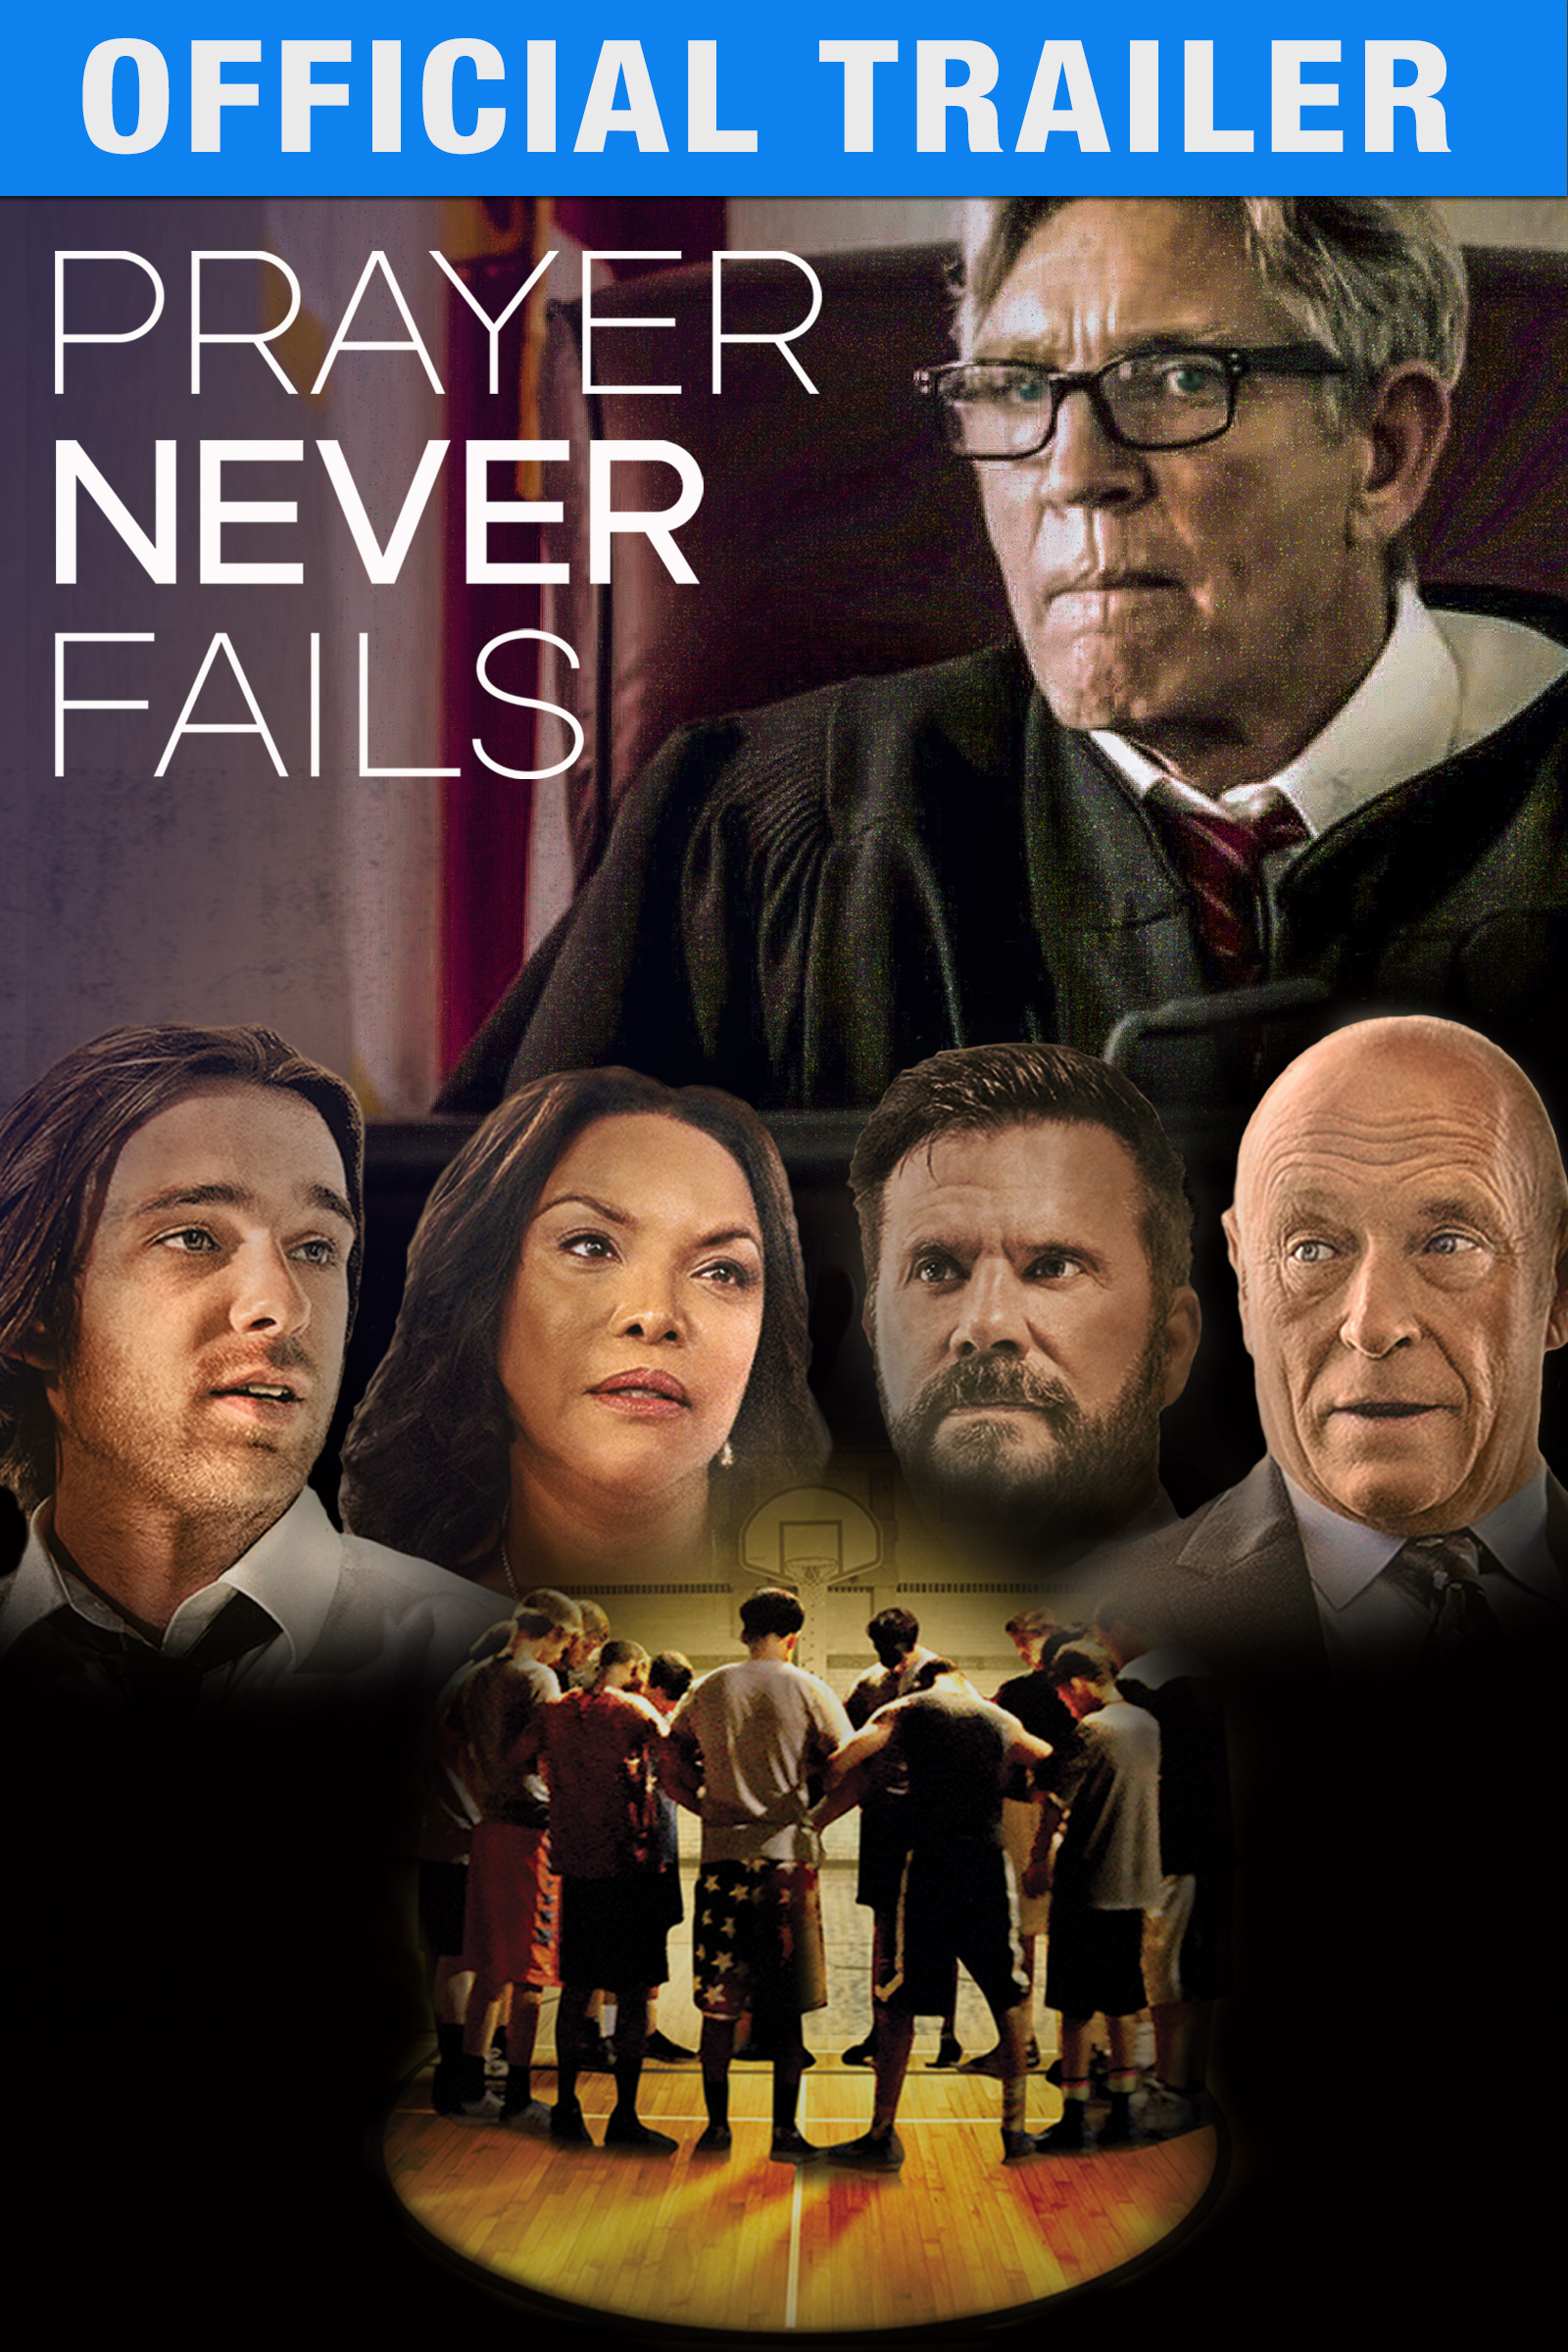 Prayer Never Fails: Trailer